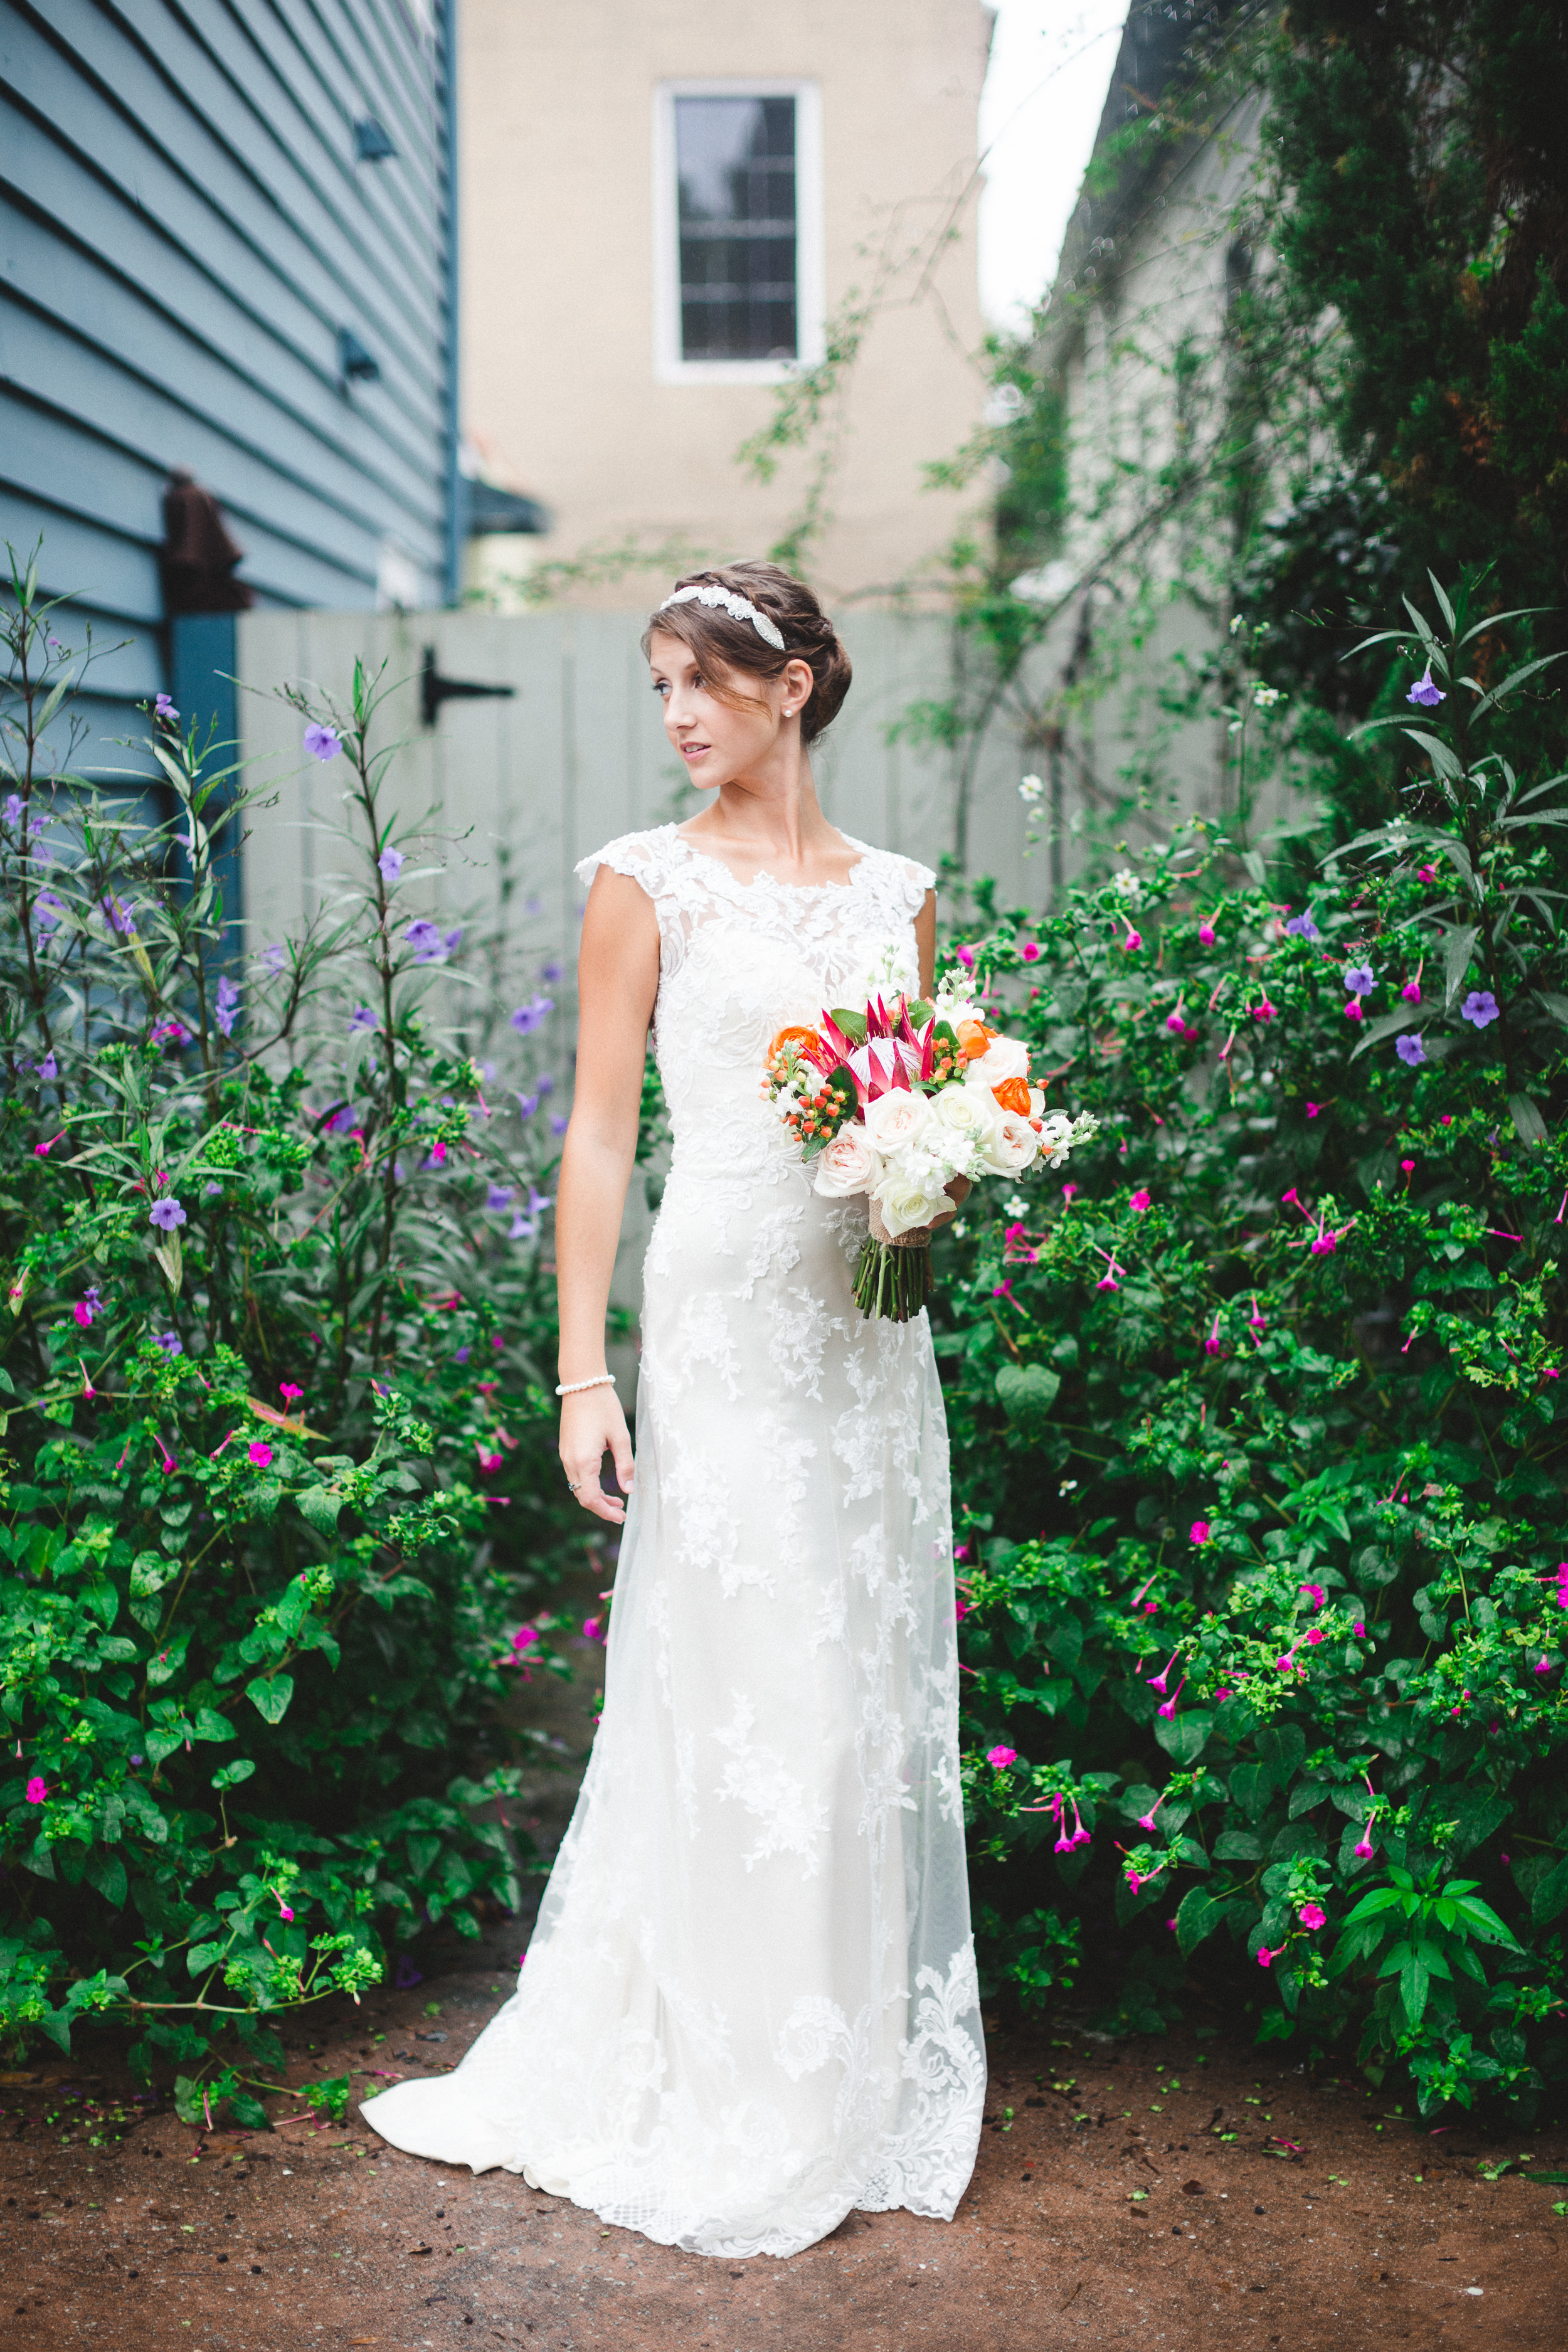 izzy-hudgins-photography-ivory-and-beau-bridal-boutique-savannah-wedding-planner-savannah-wedding-planning-old-fort-jackson-wedding-historic-wedding-savannah-wedding-florist-rustic-bohemian-wedding-savannah-wedding-savannah-weddings-13.jpg